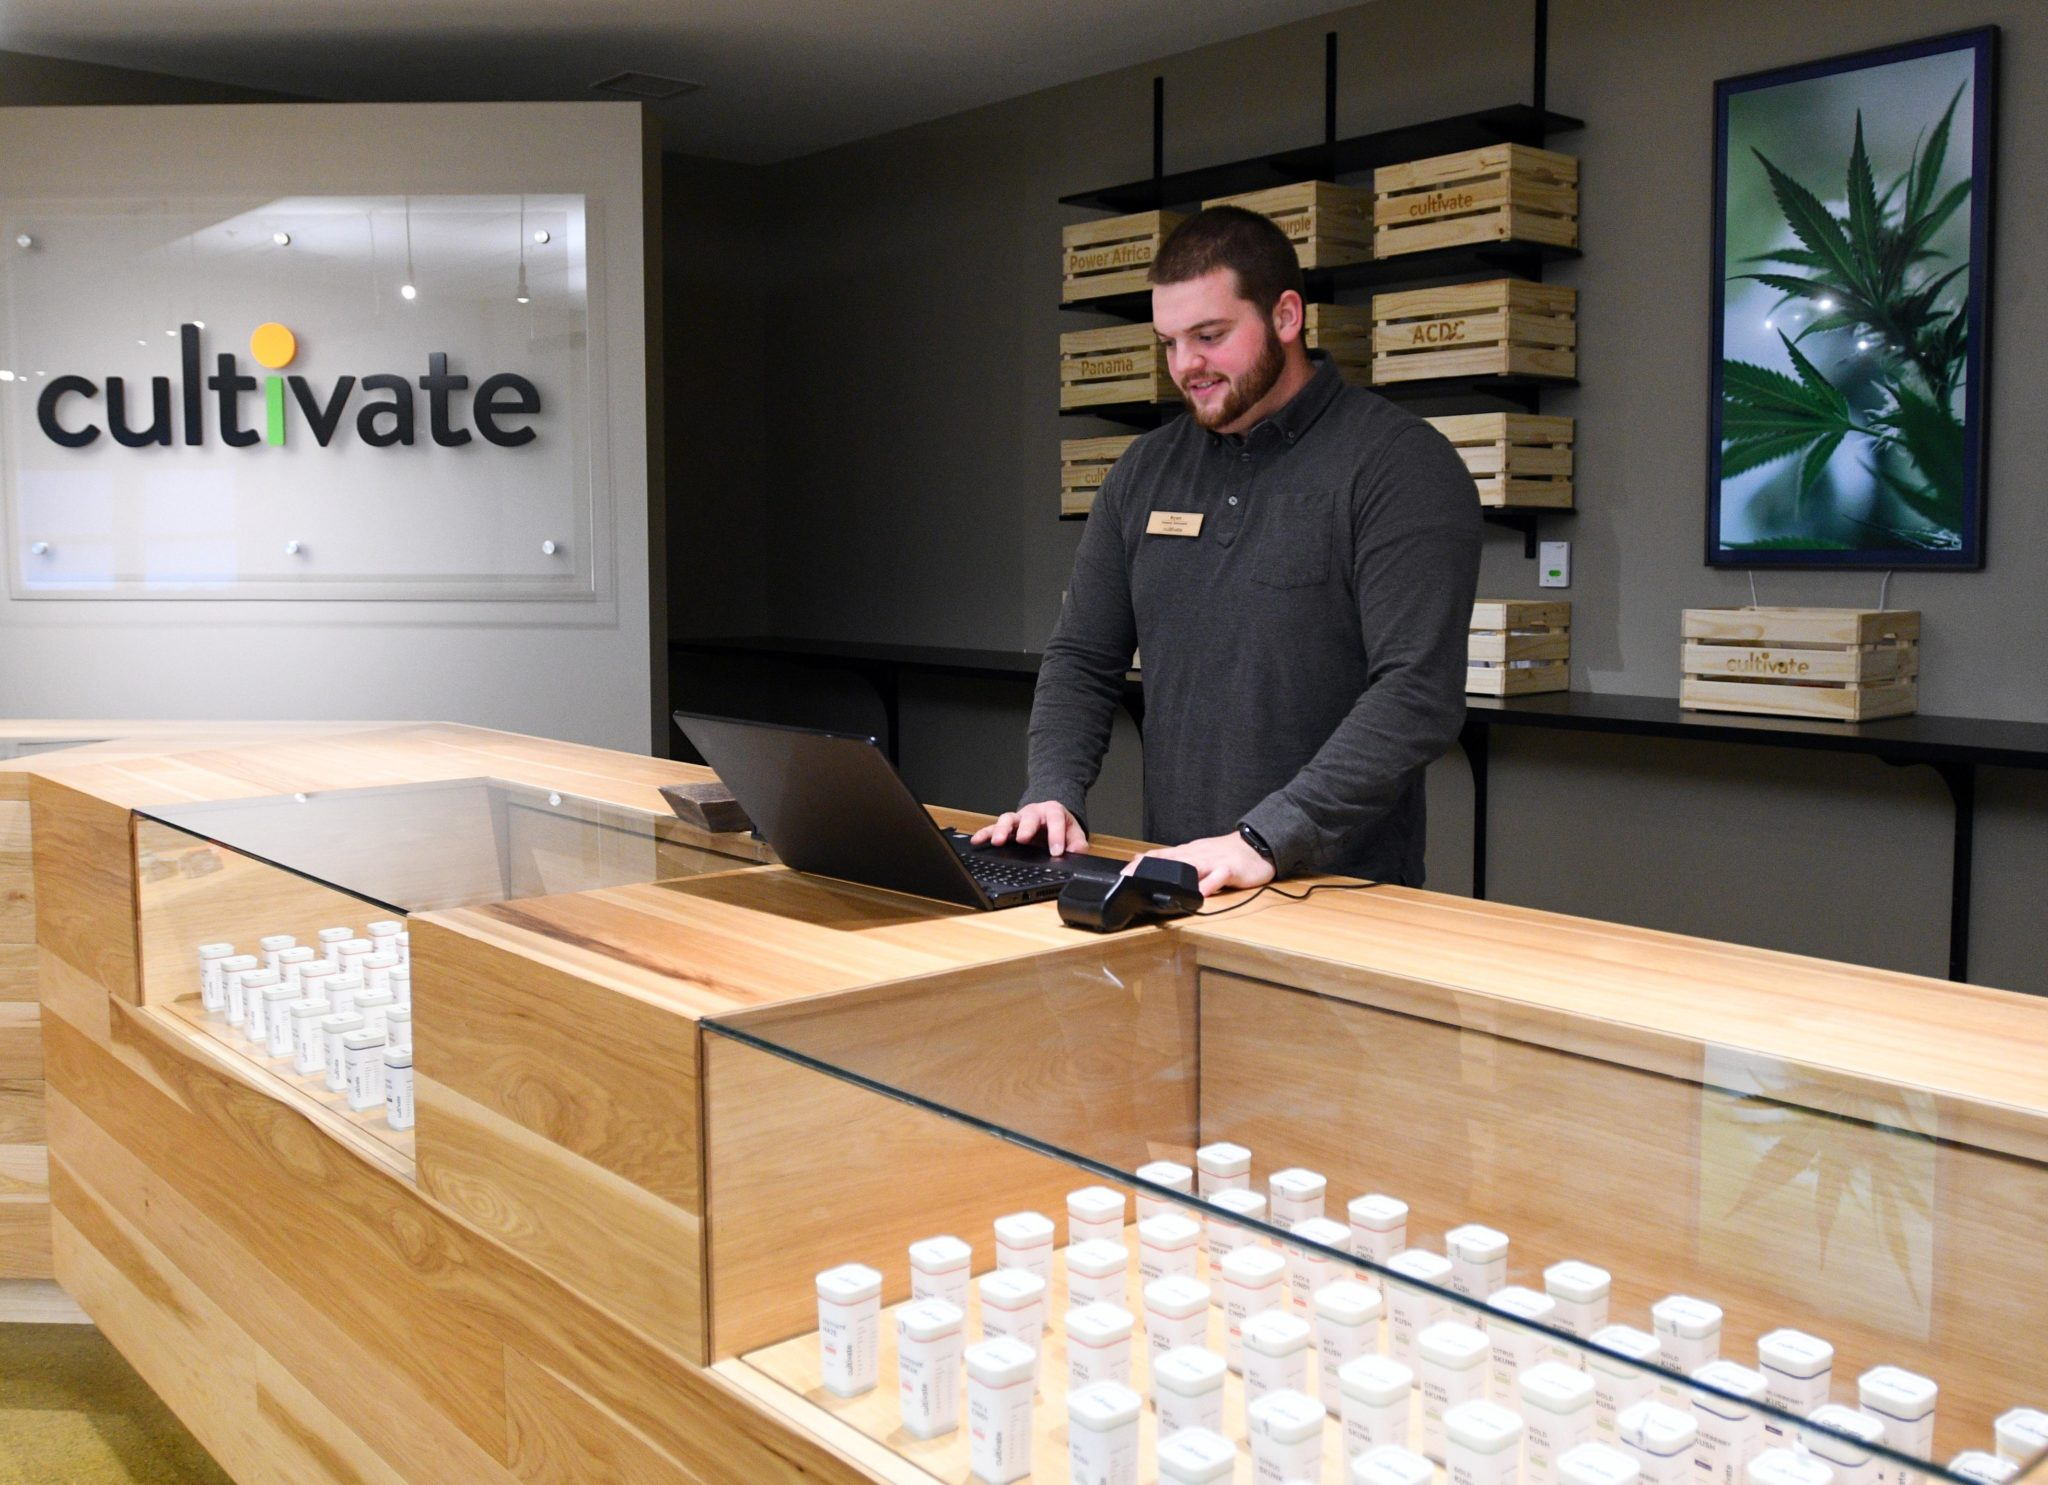 Ryan Green, patient advocate, works on his laptop at Cultivate Holdings Inc., in Leicester, the first medical marijuana dispensary to open in Worcester County and now the county's first recreational cannabis store expected to open Tuesday